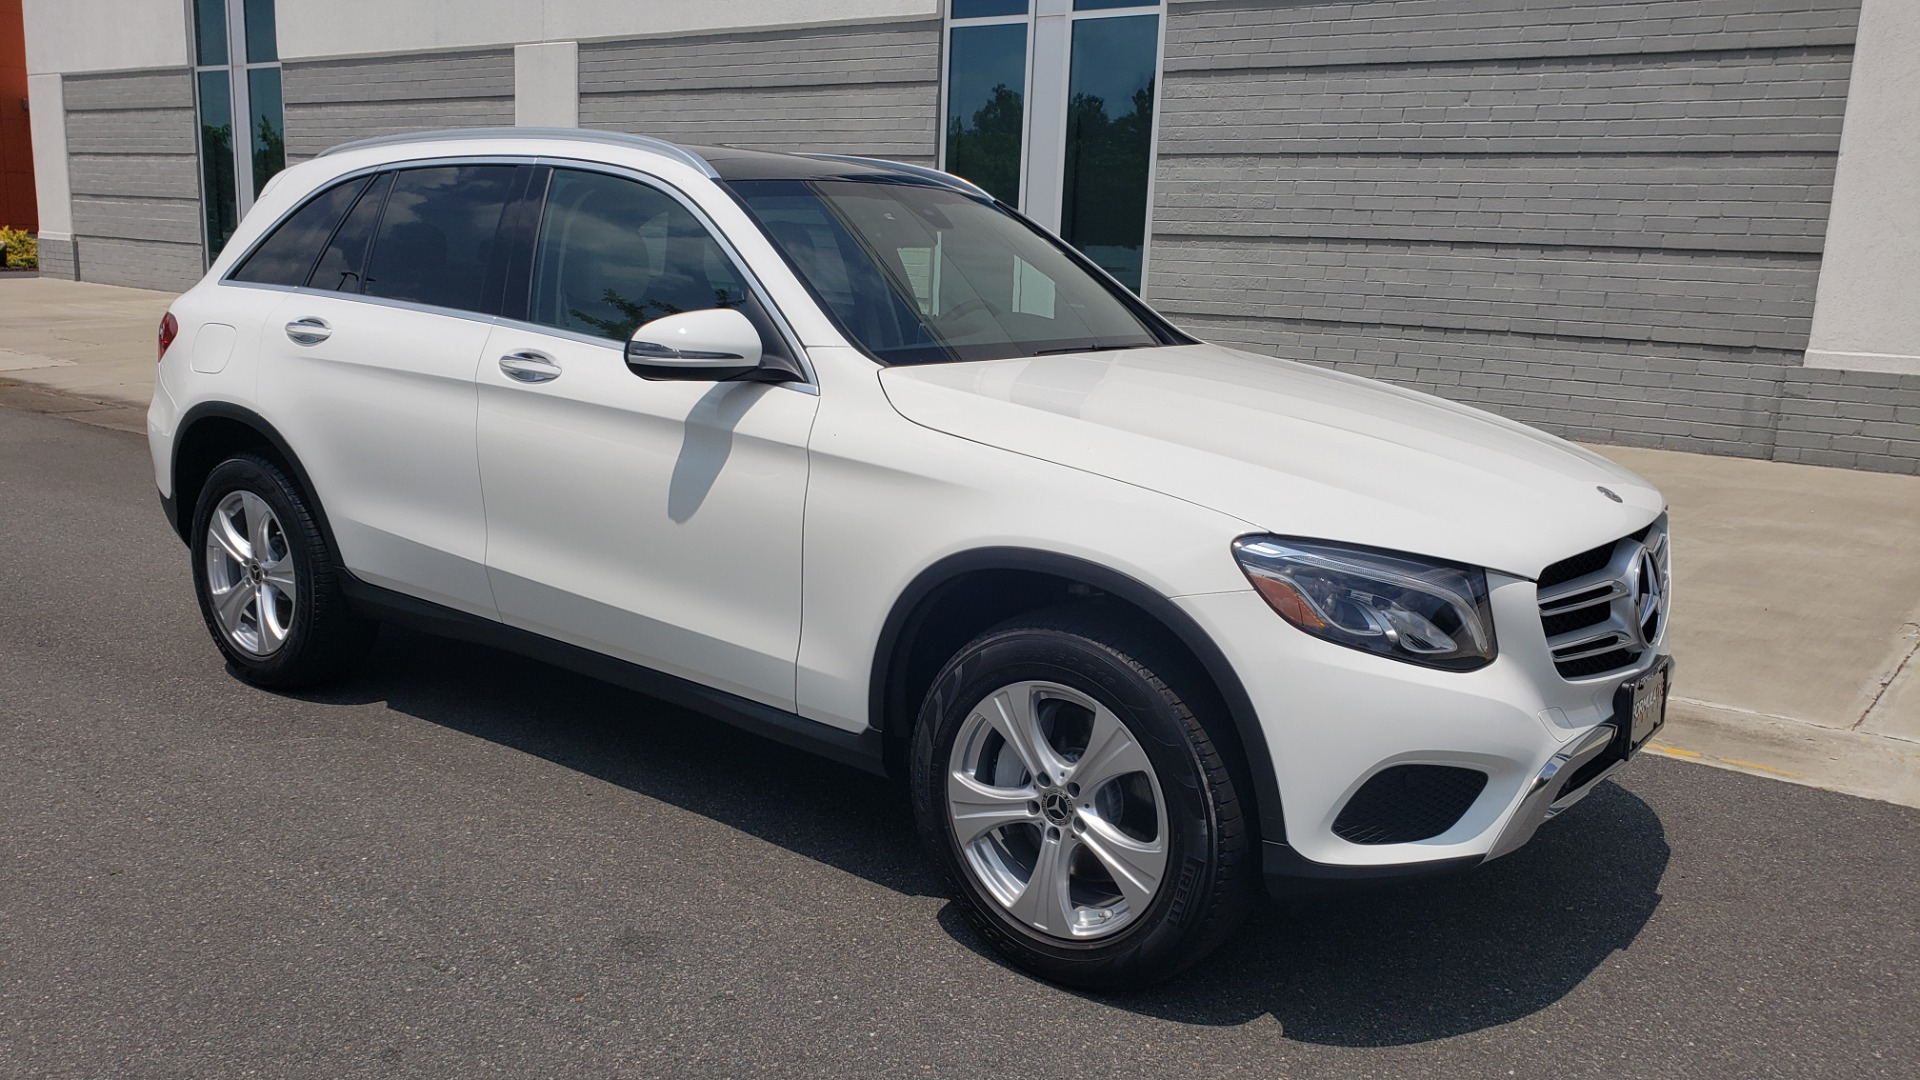 Used 2018 Mercedes-Benz GLC 300 PREMIUM 4MATIC / PANO-ROOF / BURMESTER / REARVIEW for sale $36,295 at Formula Imports in Charlotte NC 28227 7